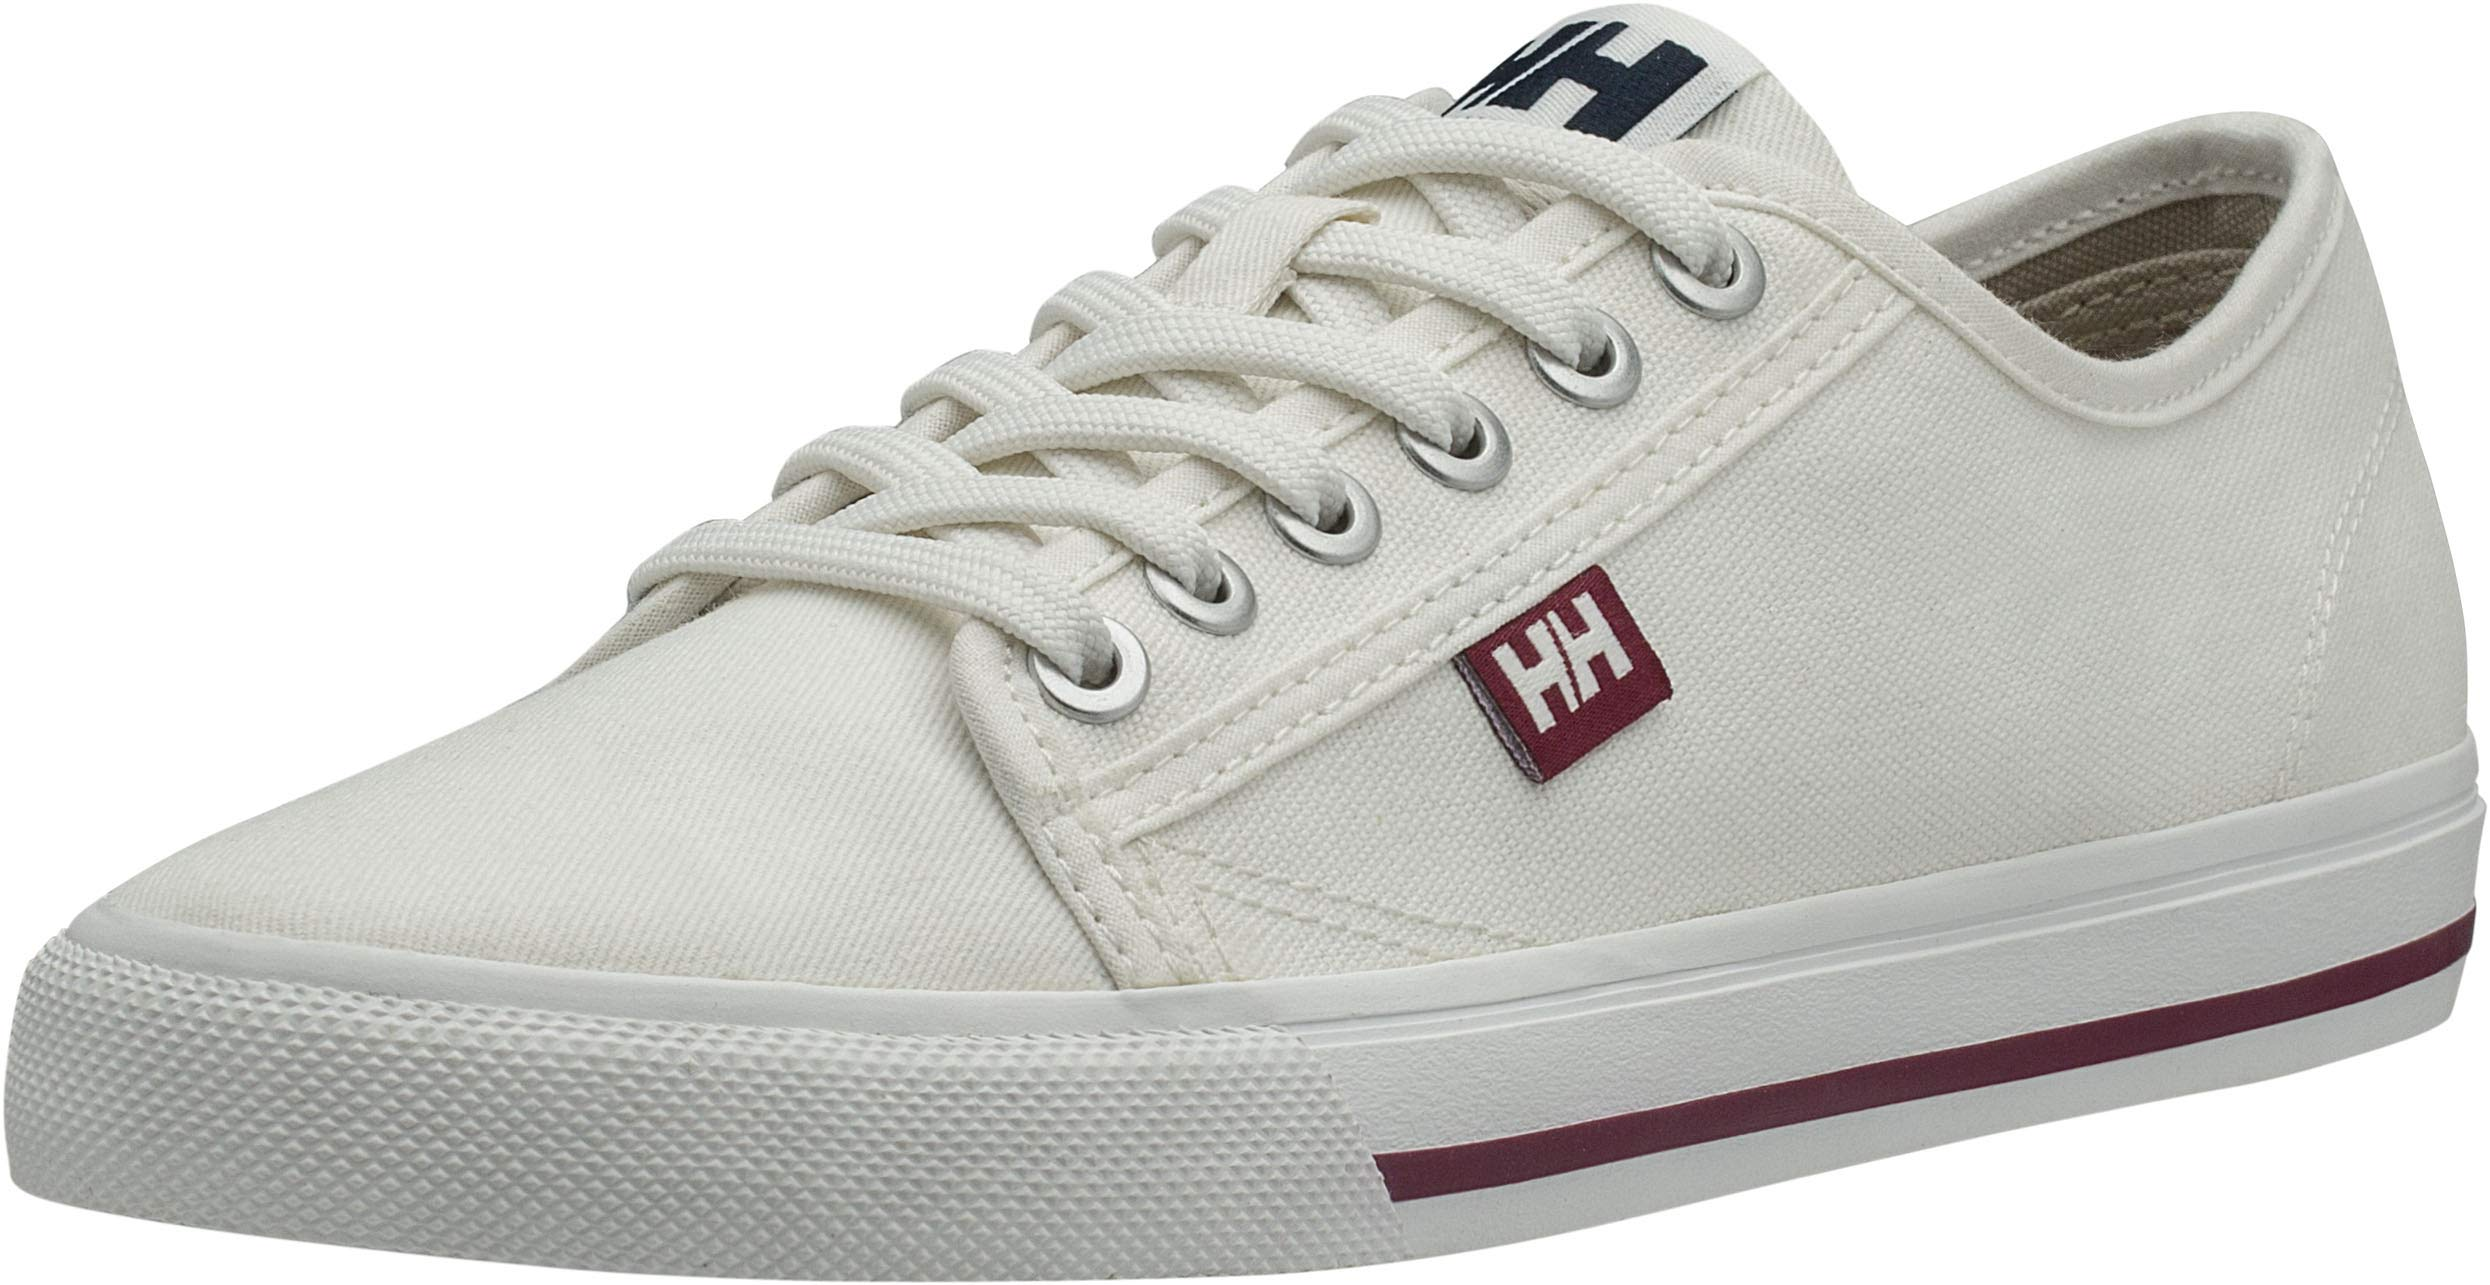 Helly Hansen Women's Fjord Canvas Shoe V2, Off White/Beet Red/Navy, 9 by Helly Hansen